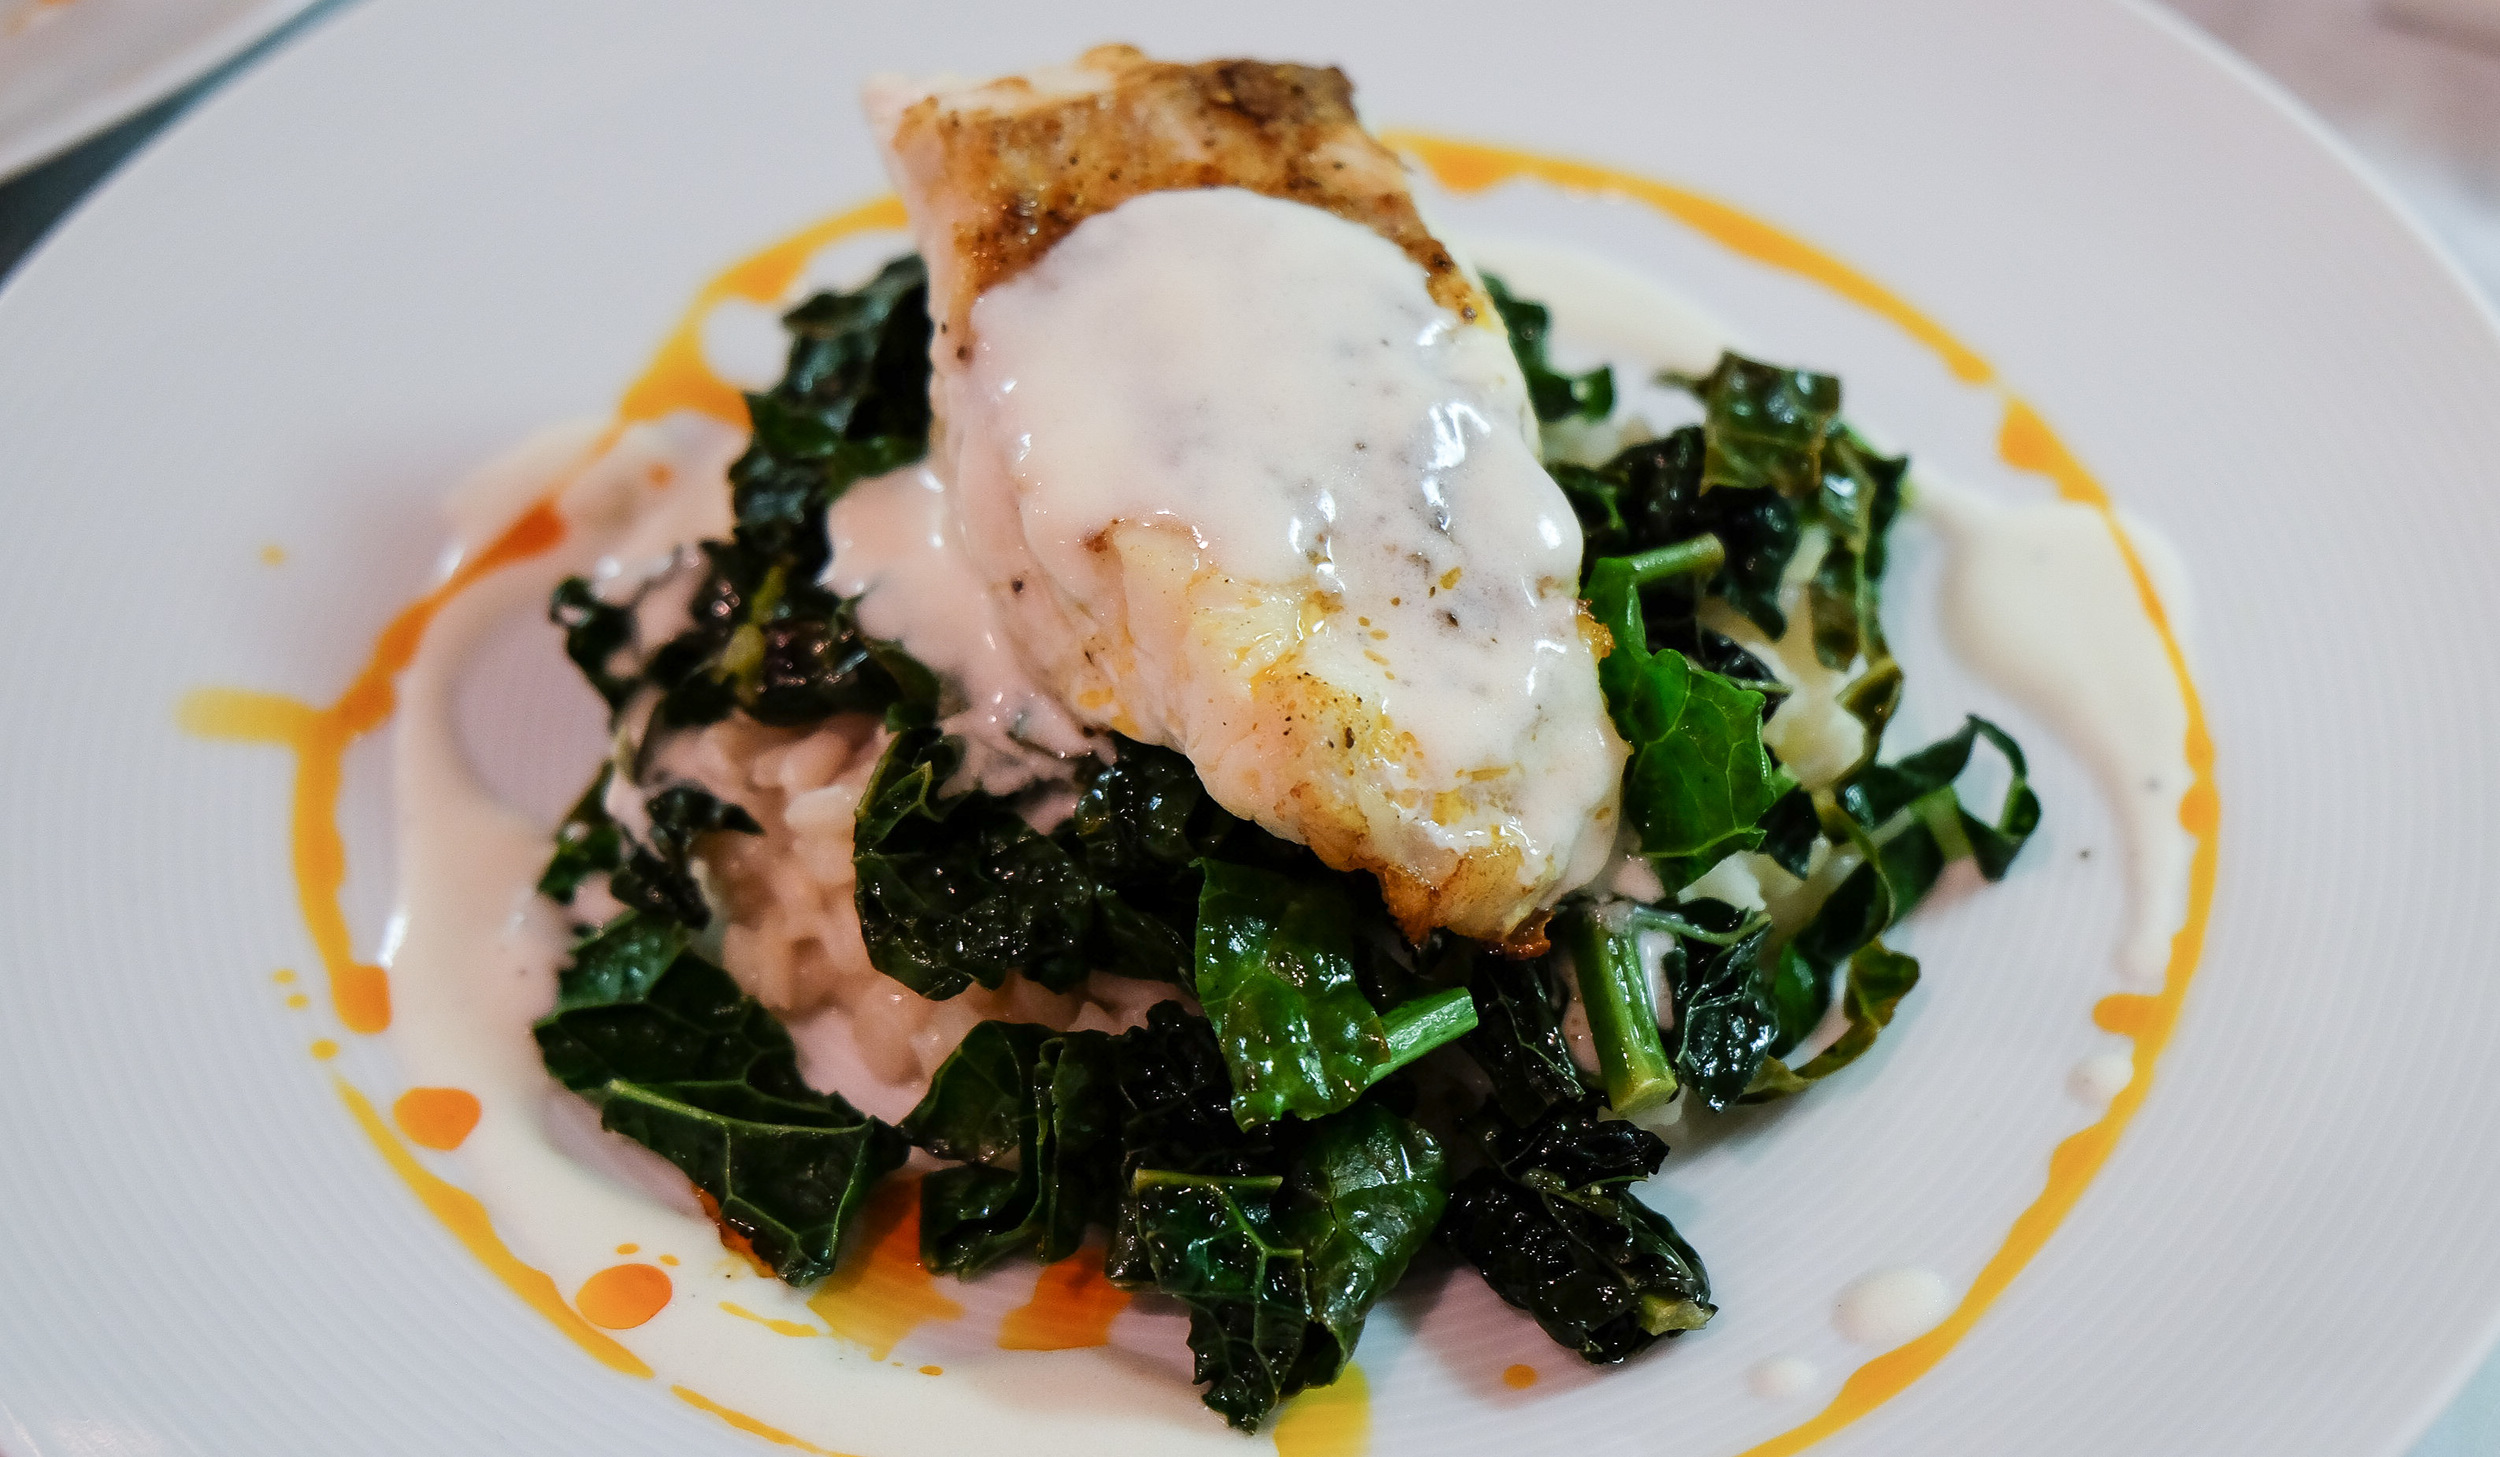 Cast Iron Seared Florida Red Grouper, Lemongrass Ginger Risotto,  Sugar Top Farms  Braised Kale, Coconut Lime Buerre Blanc